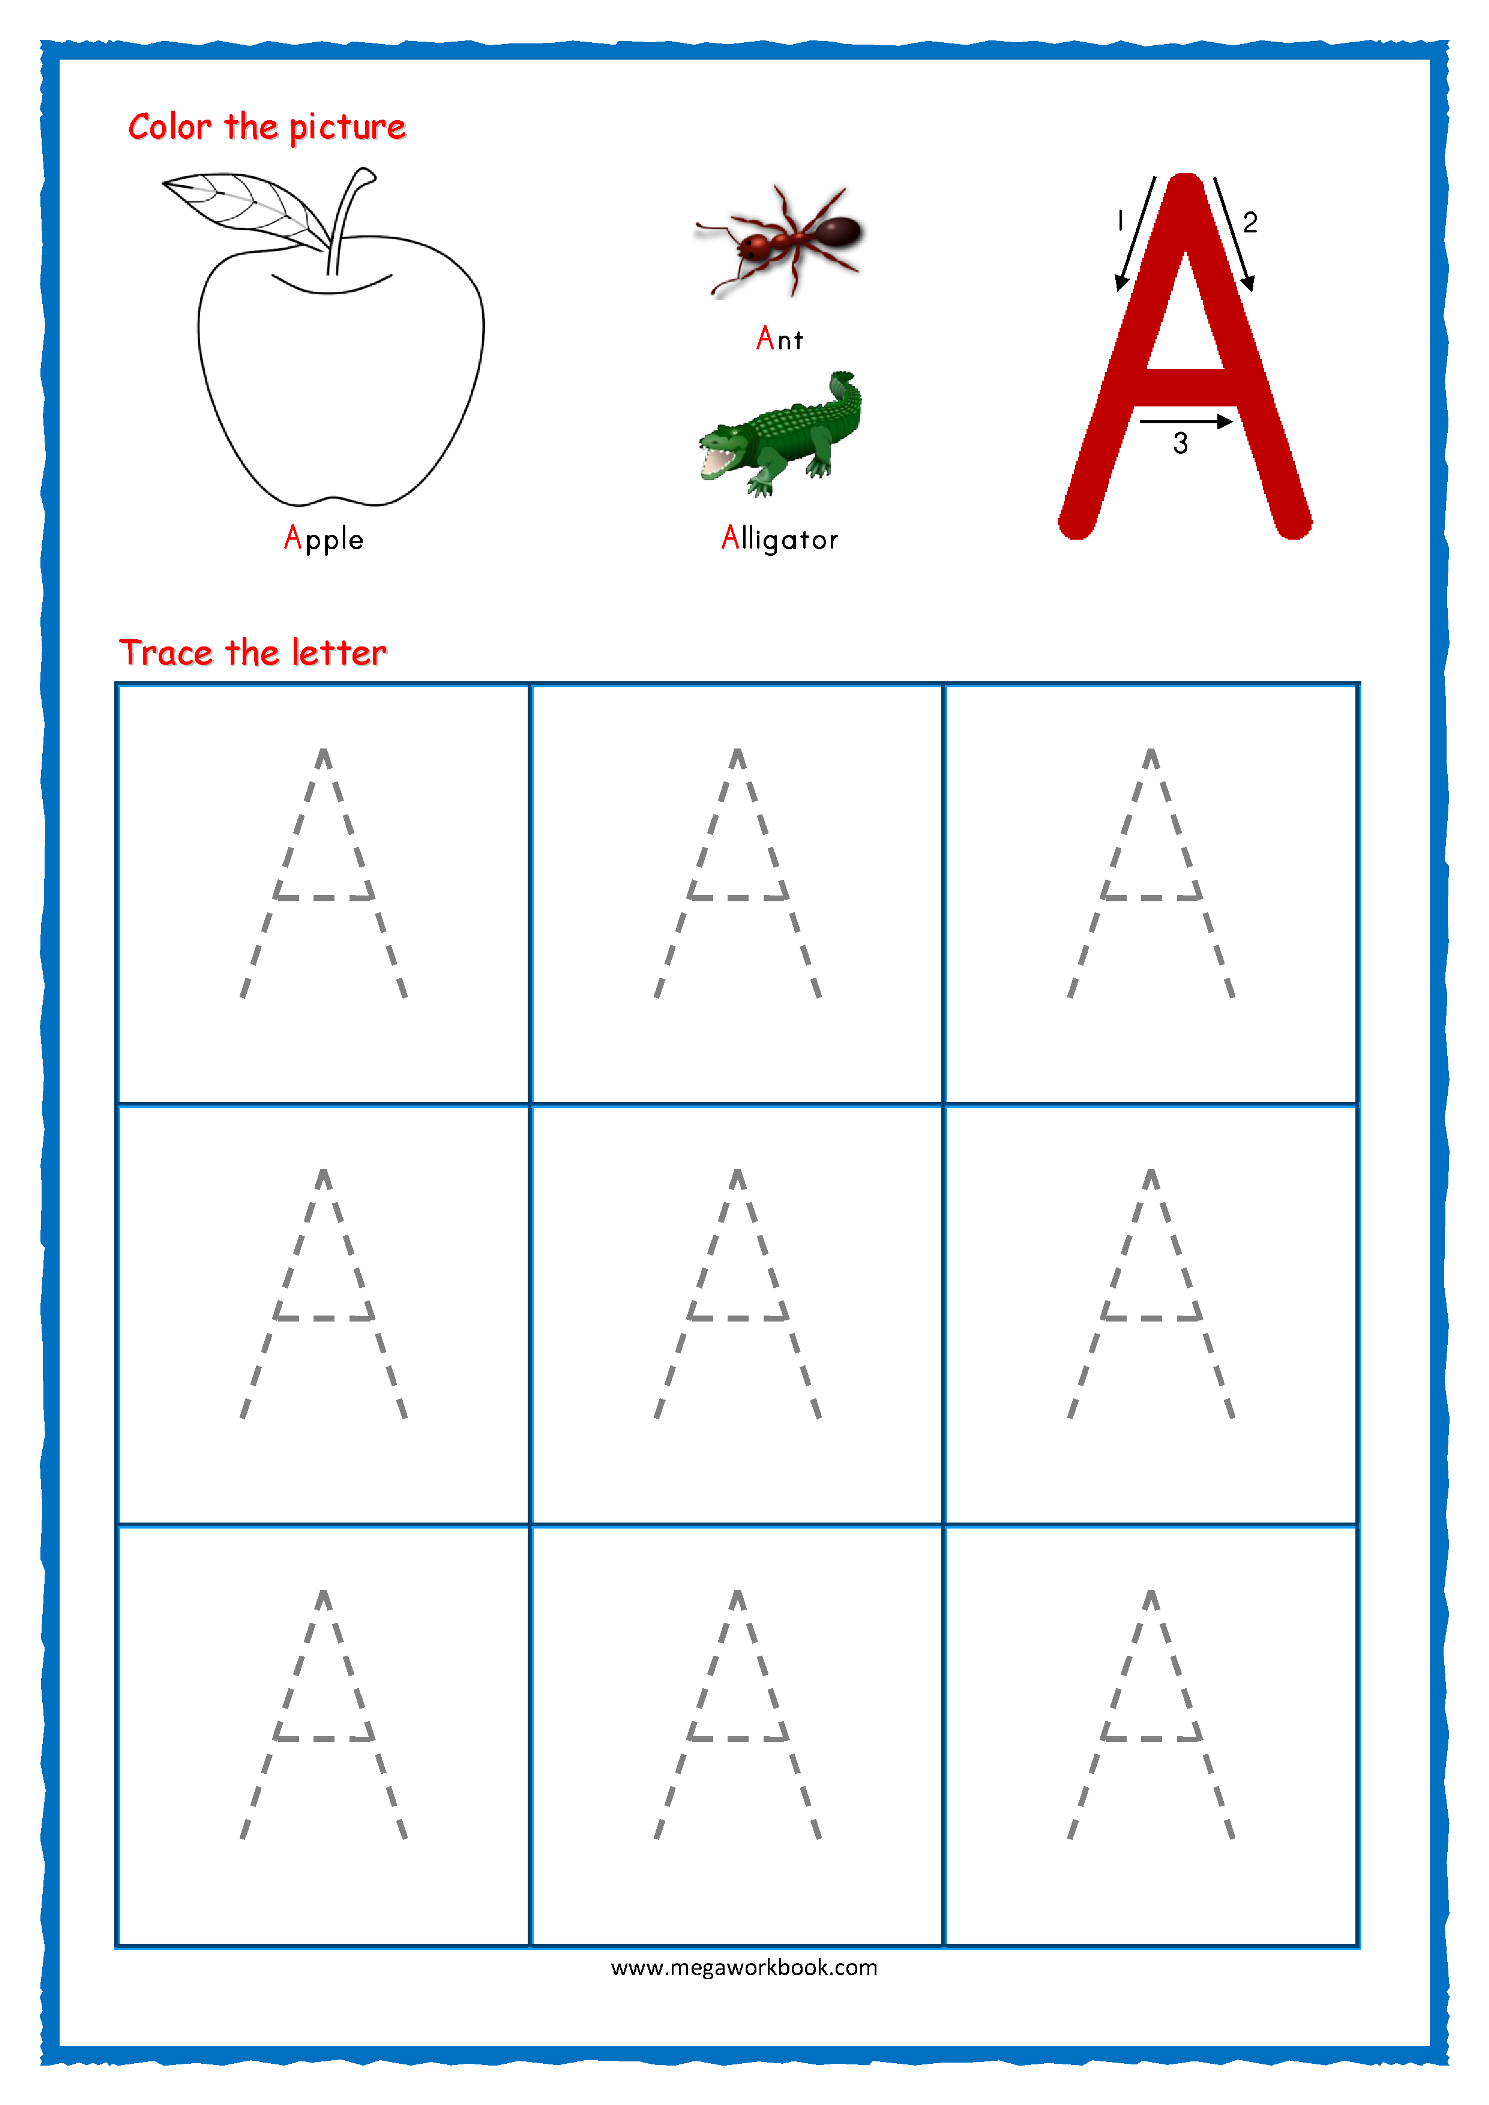 Tracing Letters - Alphabet Tracing - Capital Letters with regard to Alphabet Tracing Printables Free